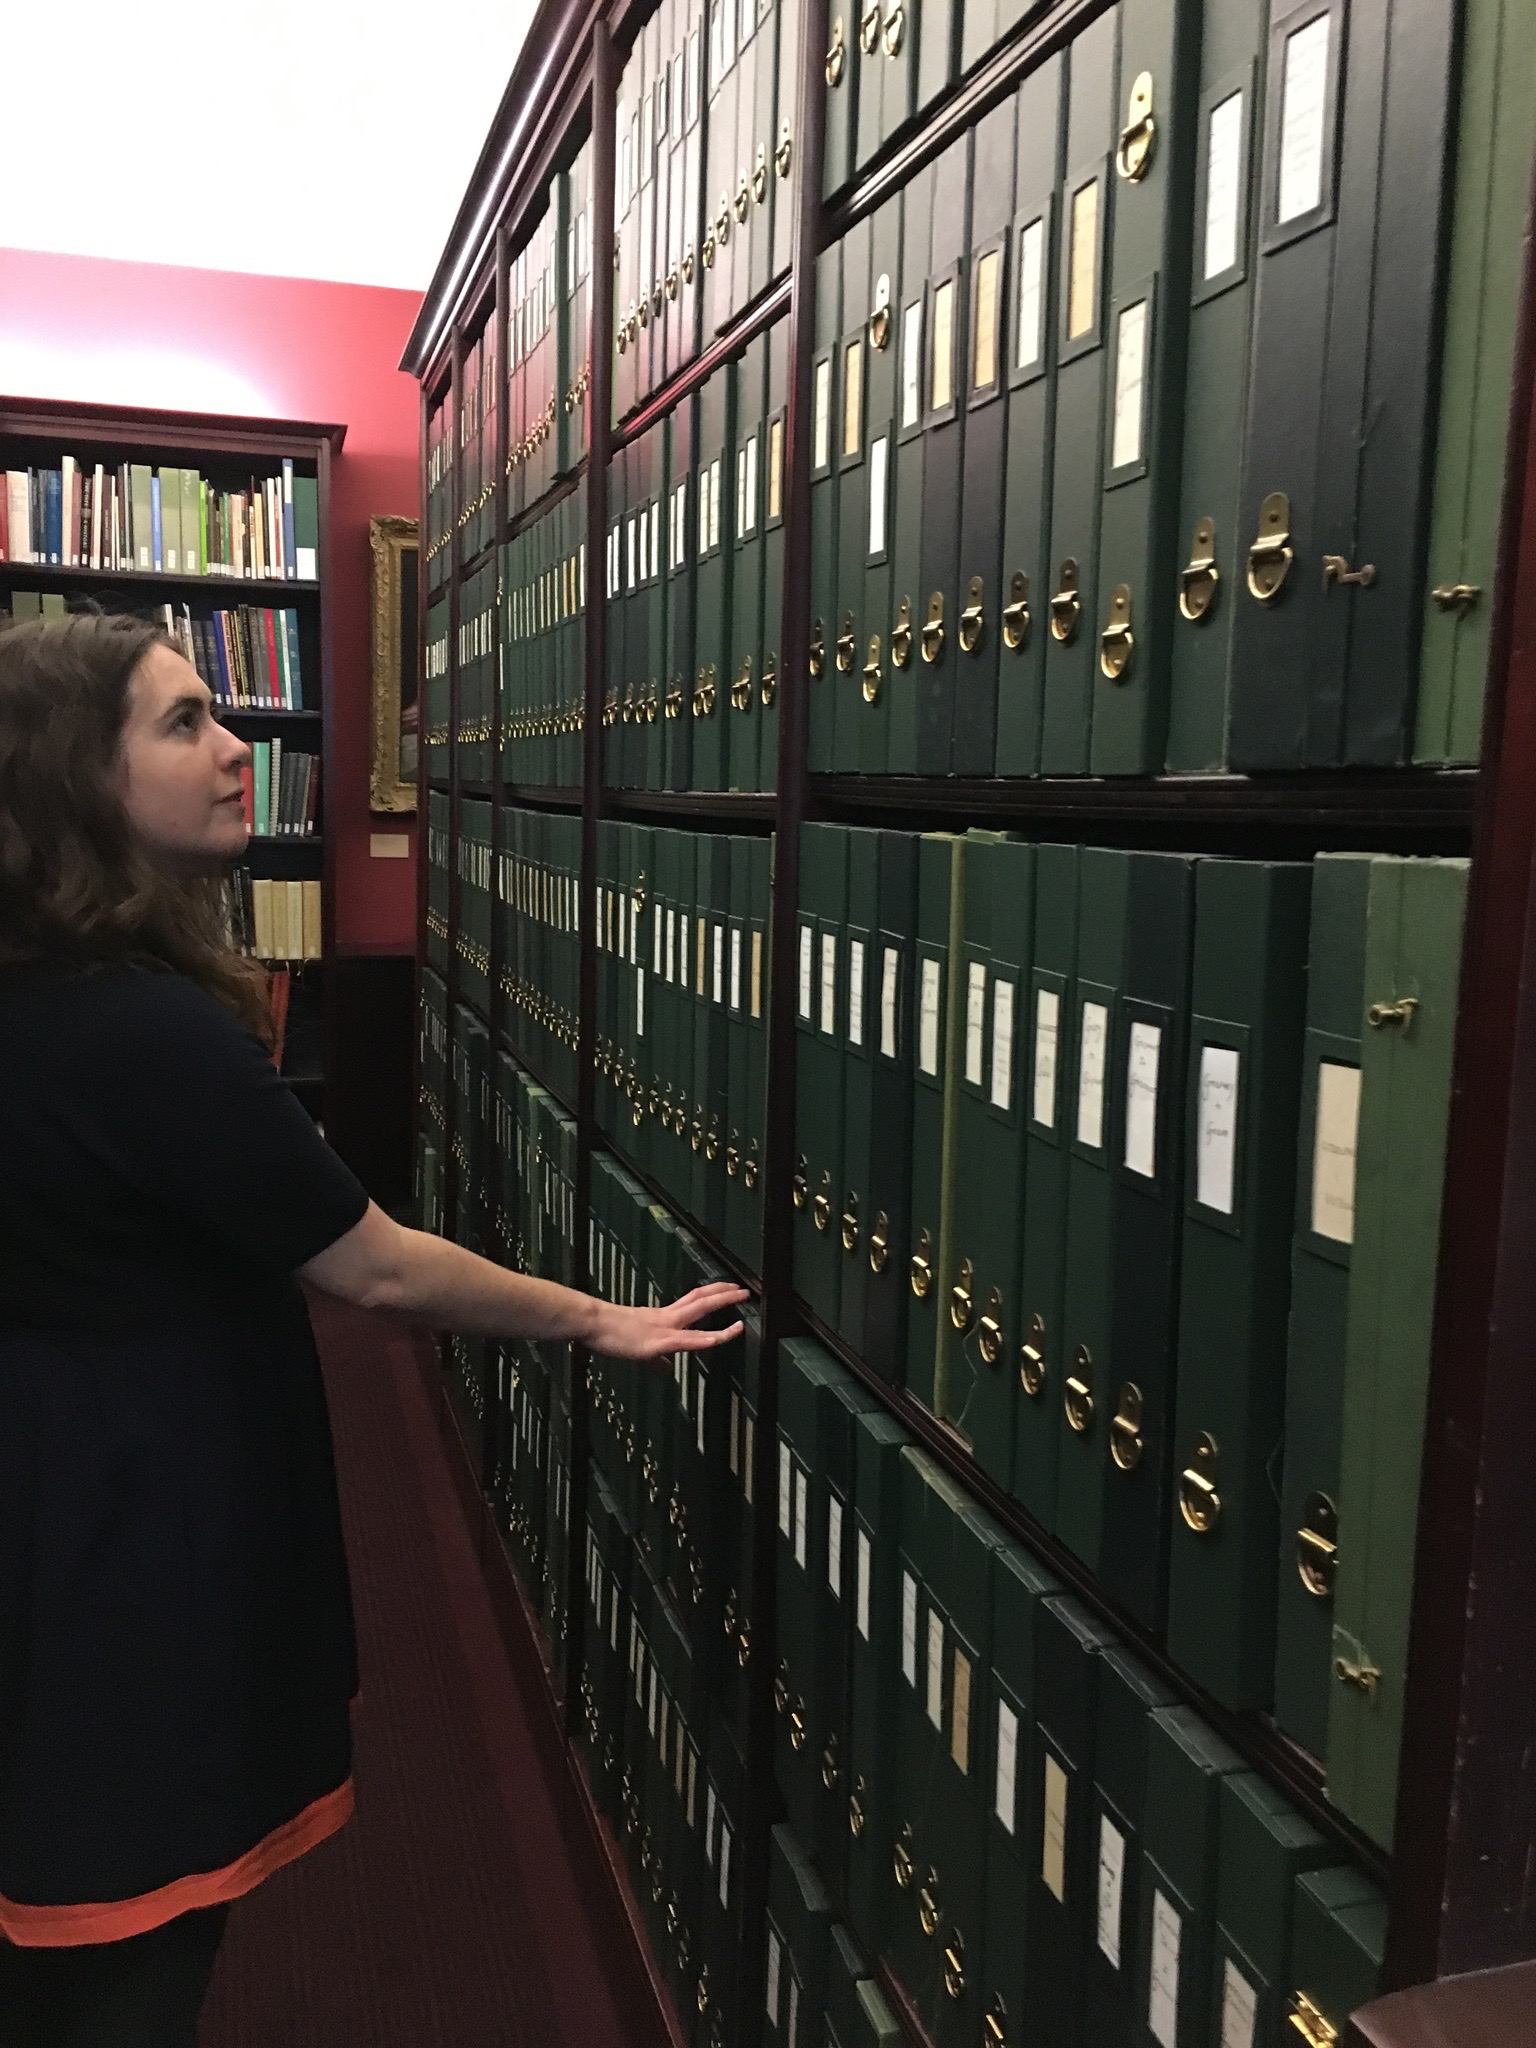 Lucy Shipp at the National Portrait Gallery's Heinz Archive and Library